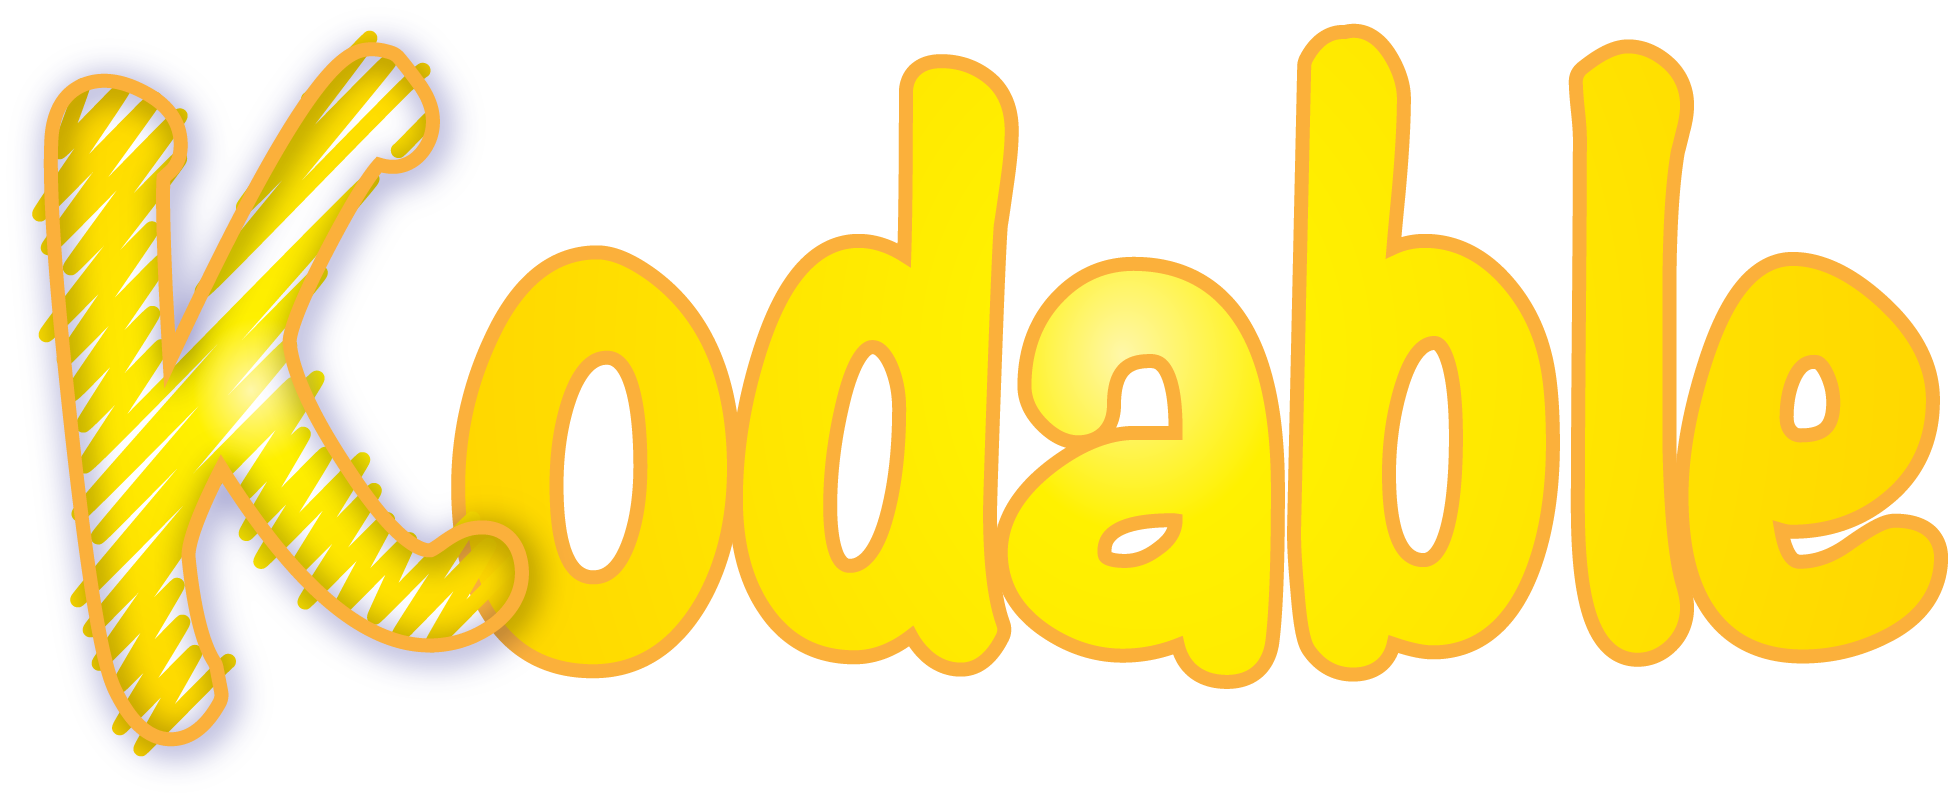 Kodable Help Center